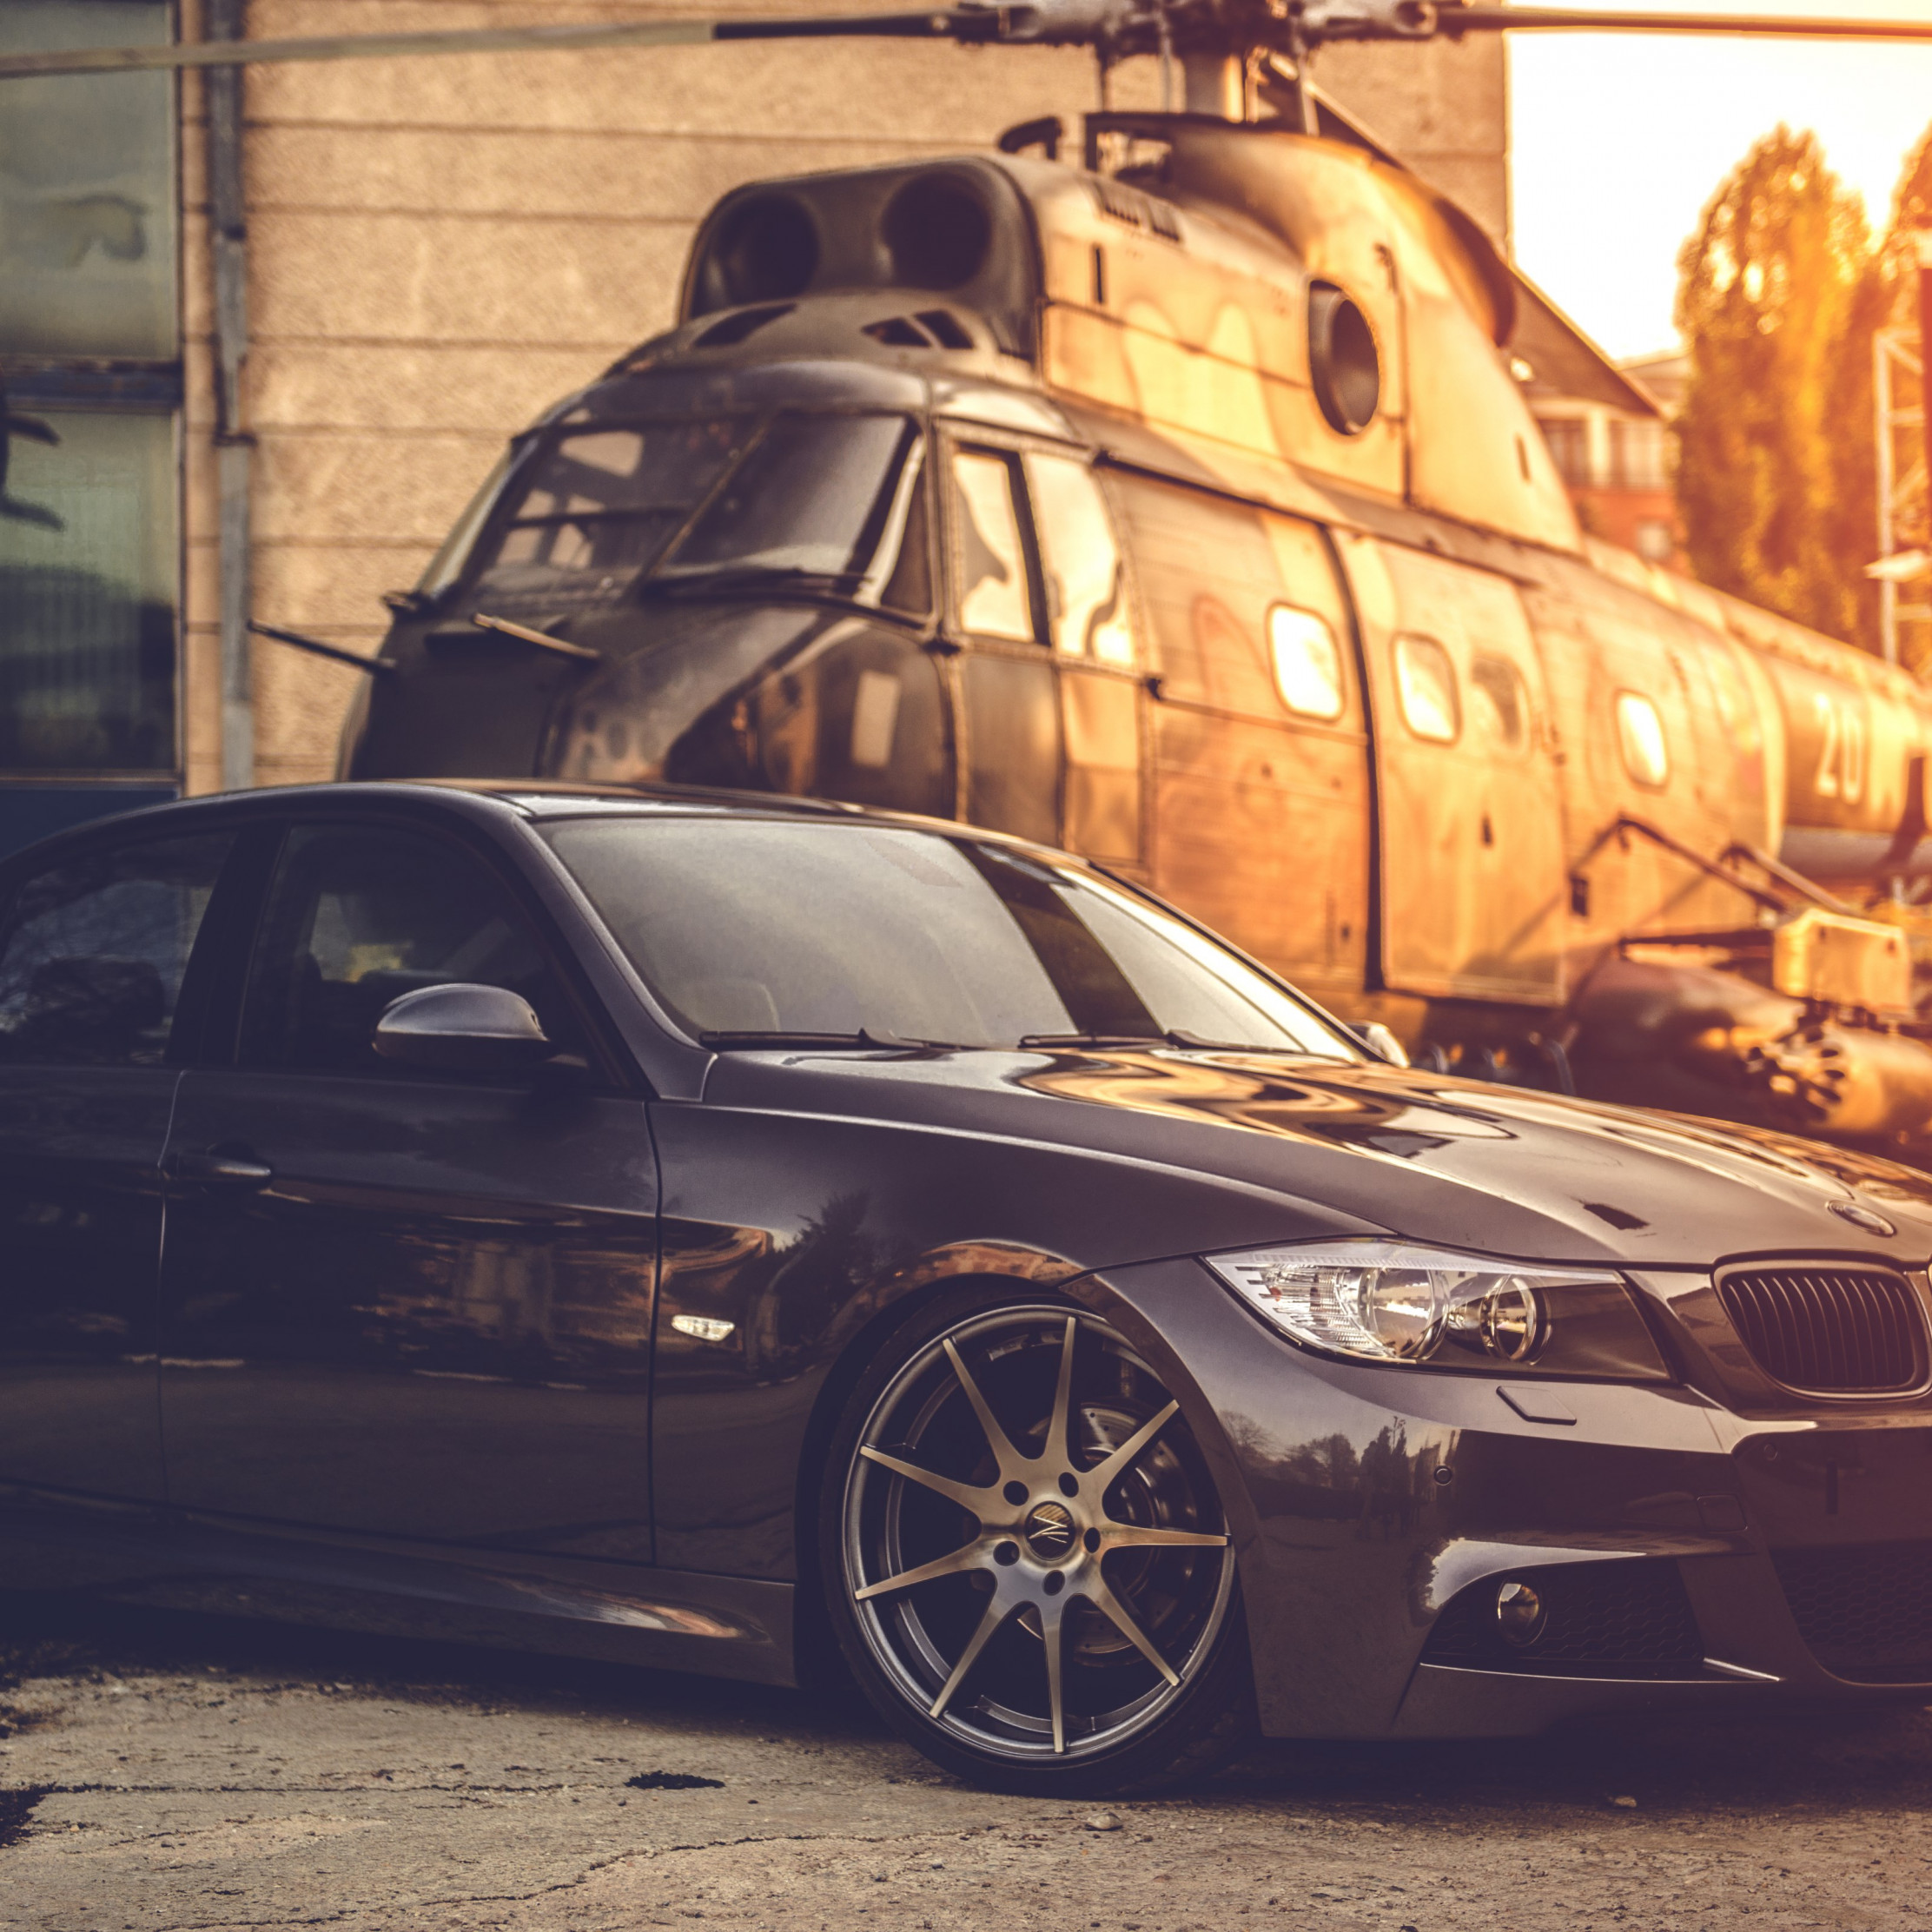 BMW E90 and one helicopter wallpaper 2224x2224